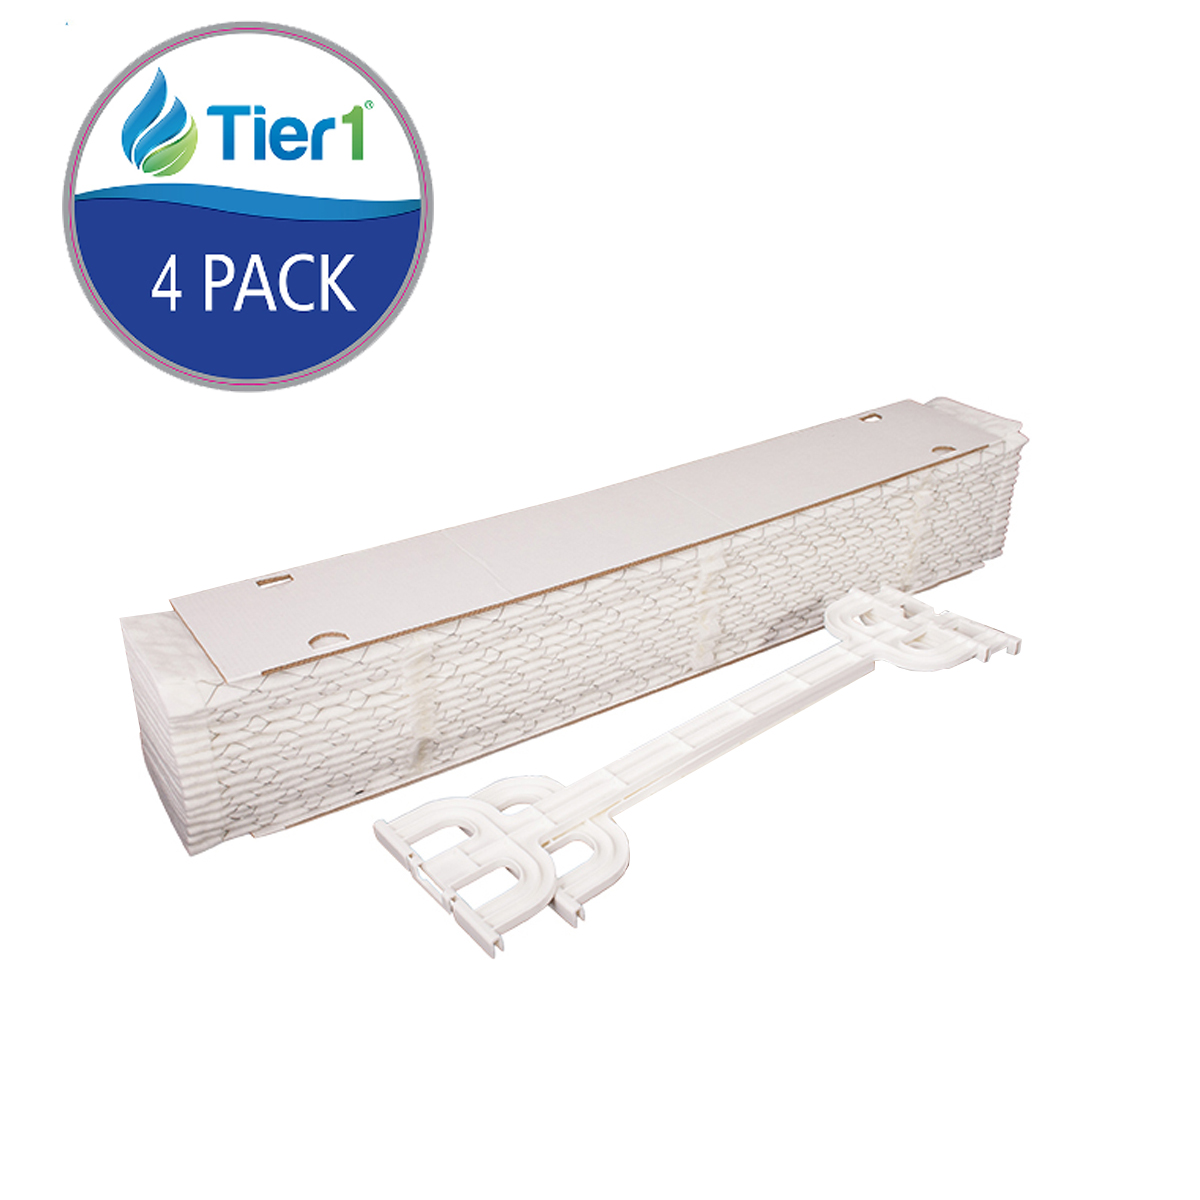 Air Purifier Replacement Filter 410 by Tier1 (4-Pack) TIER1_AF410_4_PACK